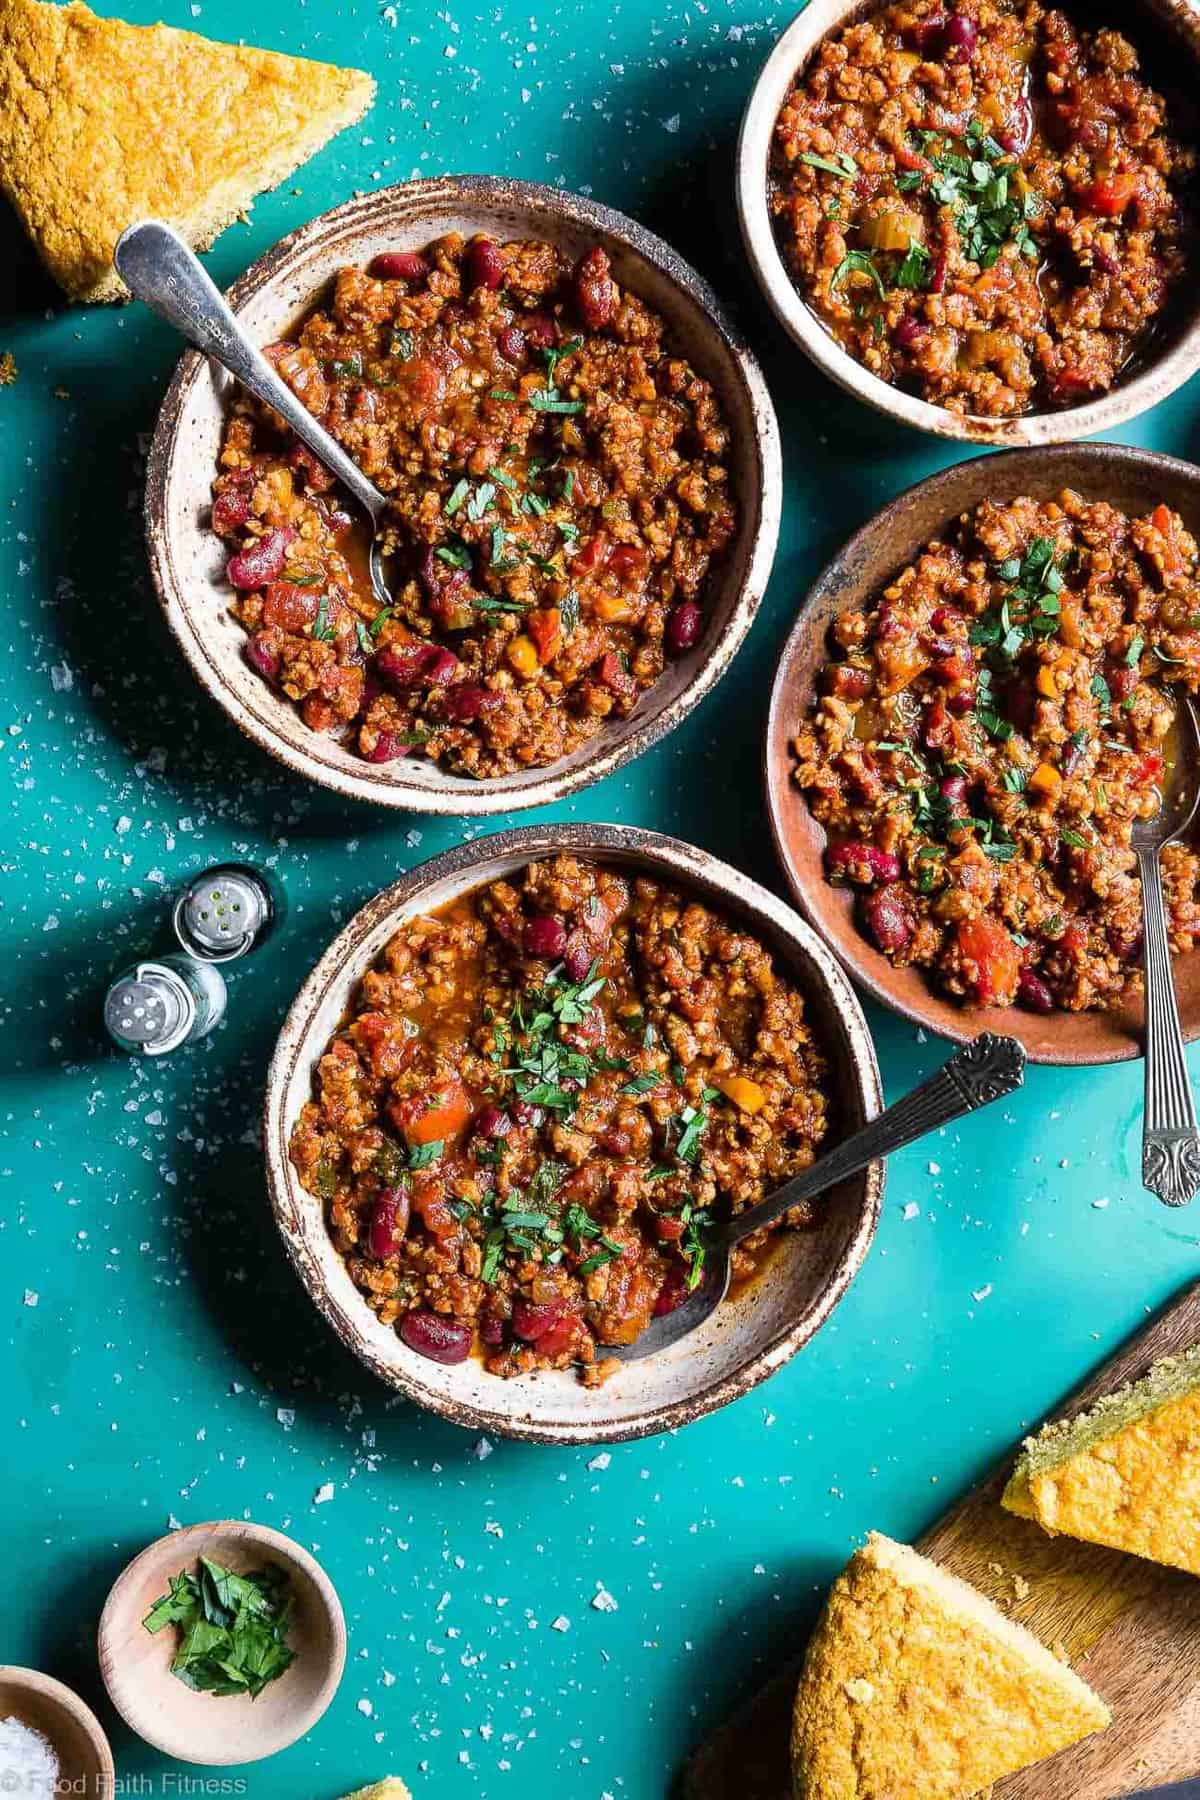 Instant Pot Meatless Vegan Chili -  You will NEVER believe that this is a vegetarian chili recipe! It's a healthy, gluten free weeknight meal that is ready in only 30 minutes! Even meat-eaters are going to LOVE this recipe! | #Foodfaithfitness | #Vegan #Vegetarian #Chili #Instantpot #healthy